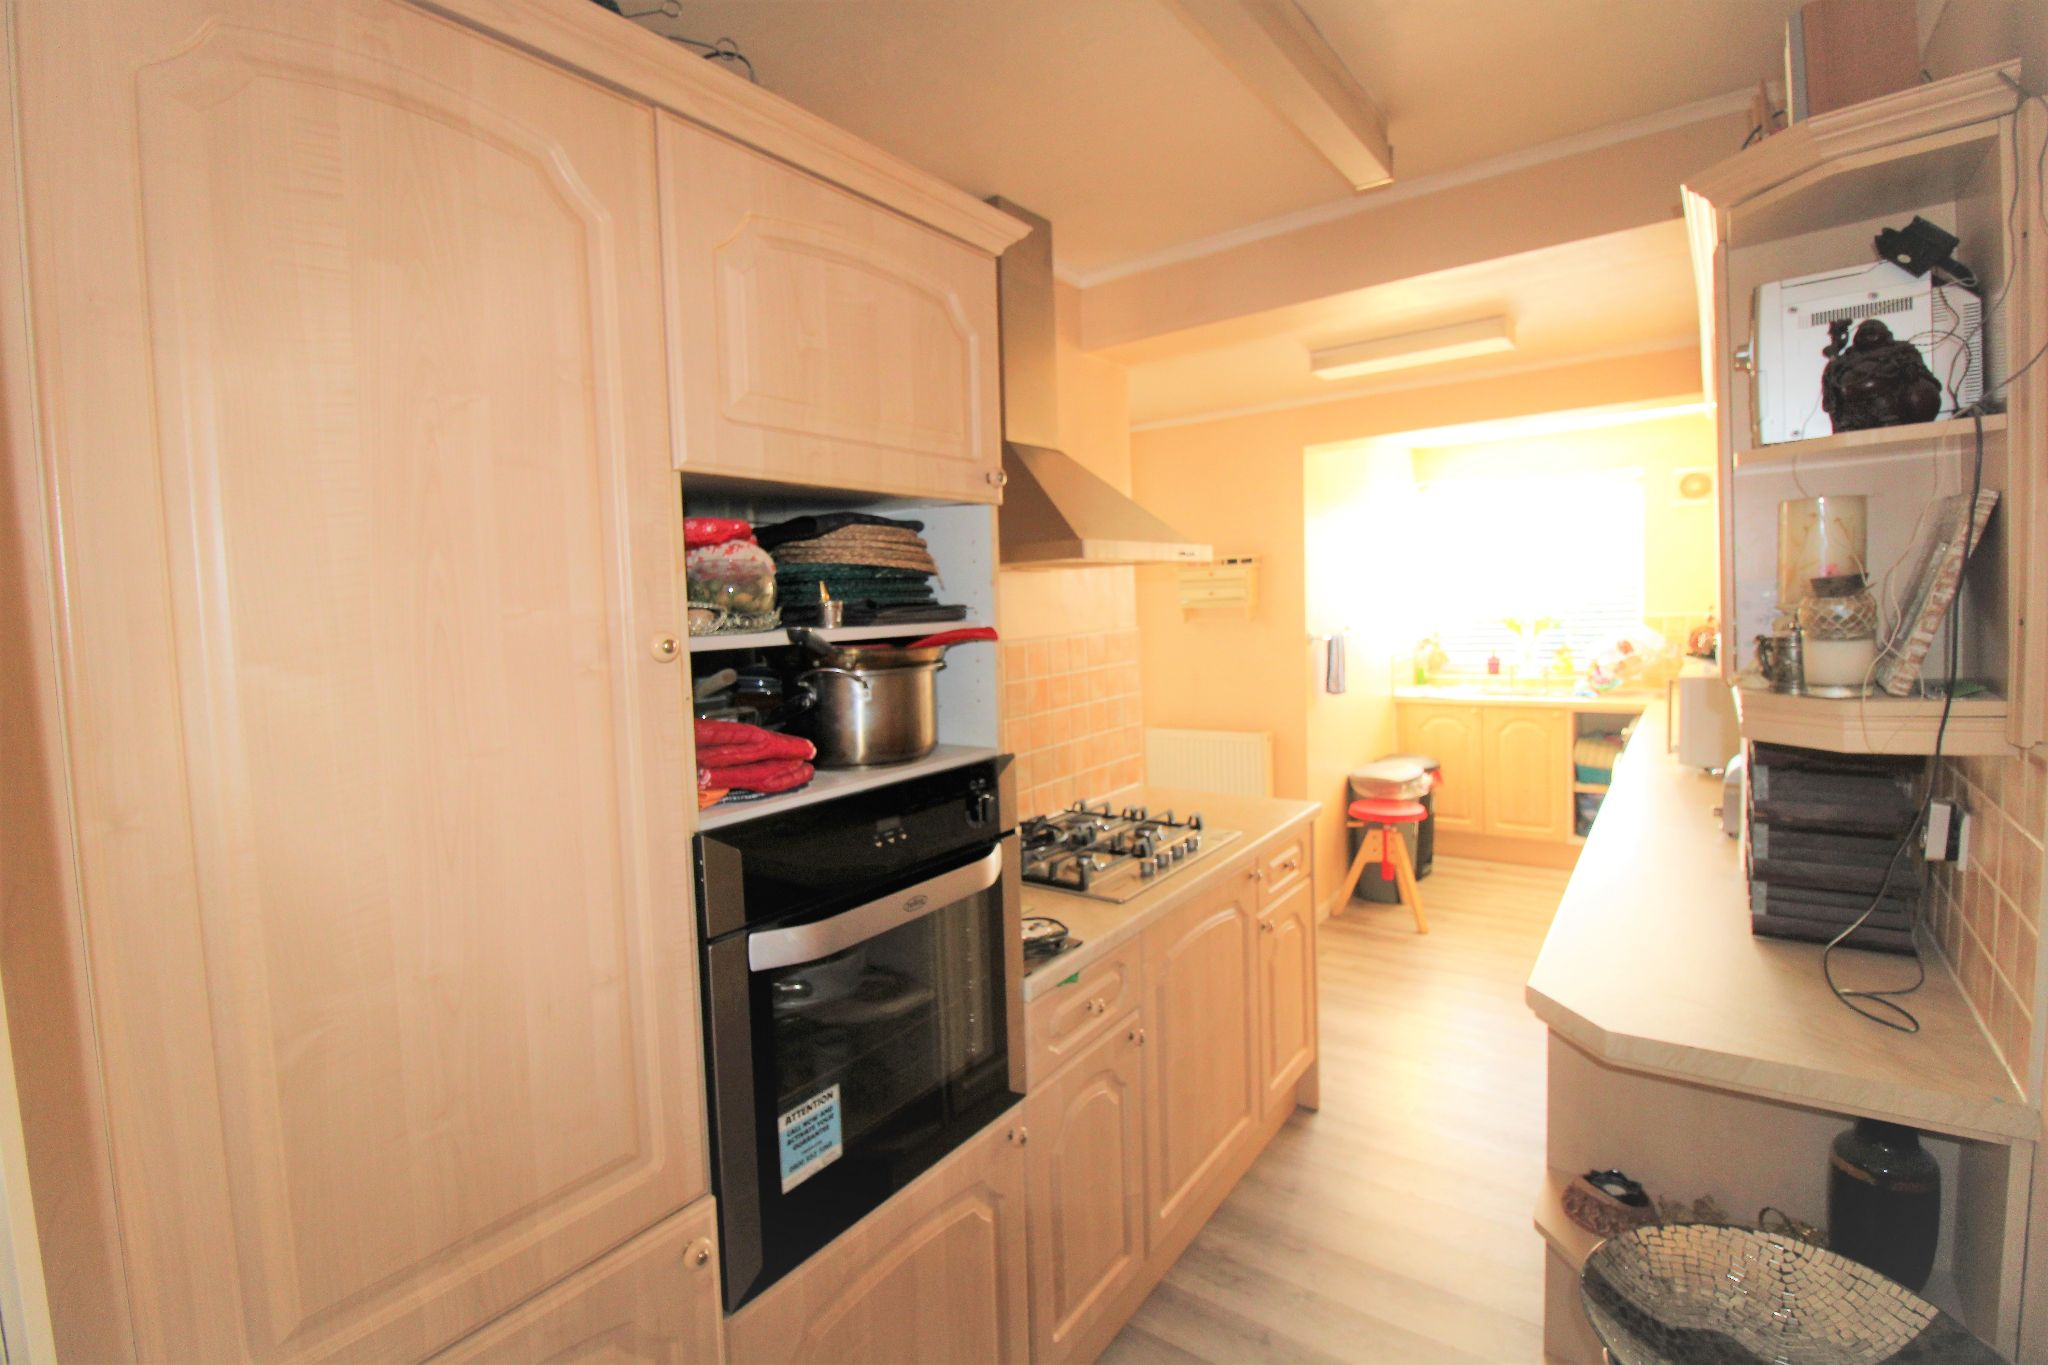 3 Bedroom Semi-detached House For Sale - Kitchen 2